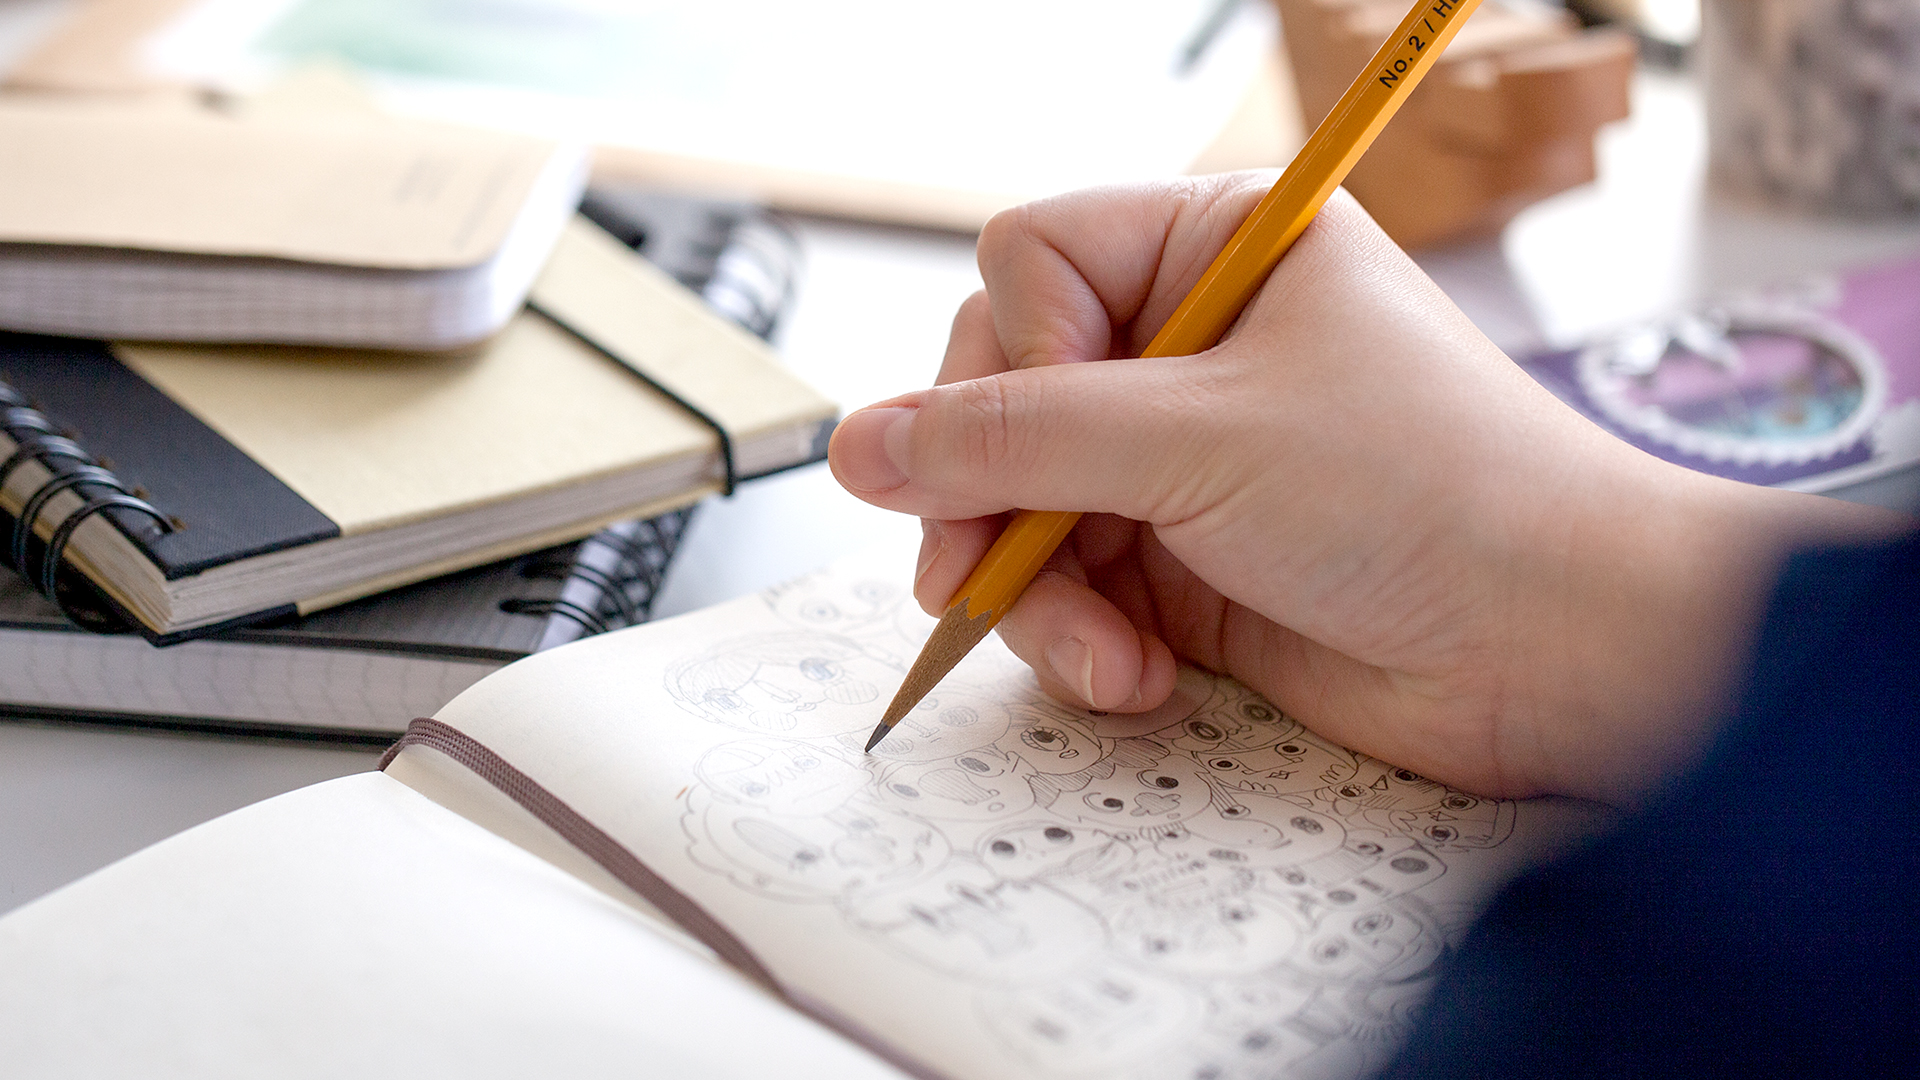 Careers in writing and art